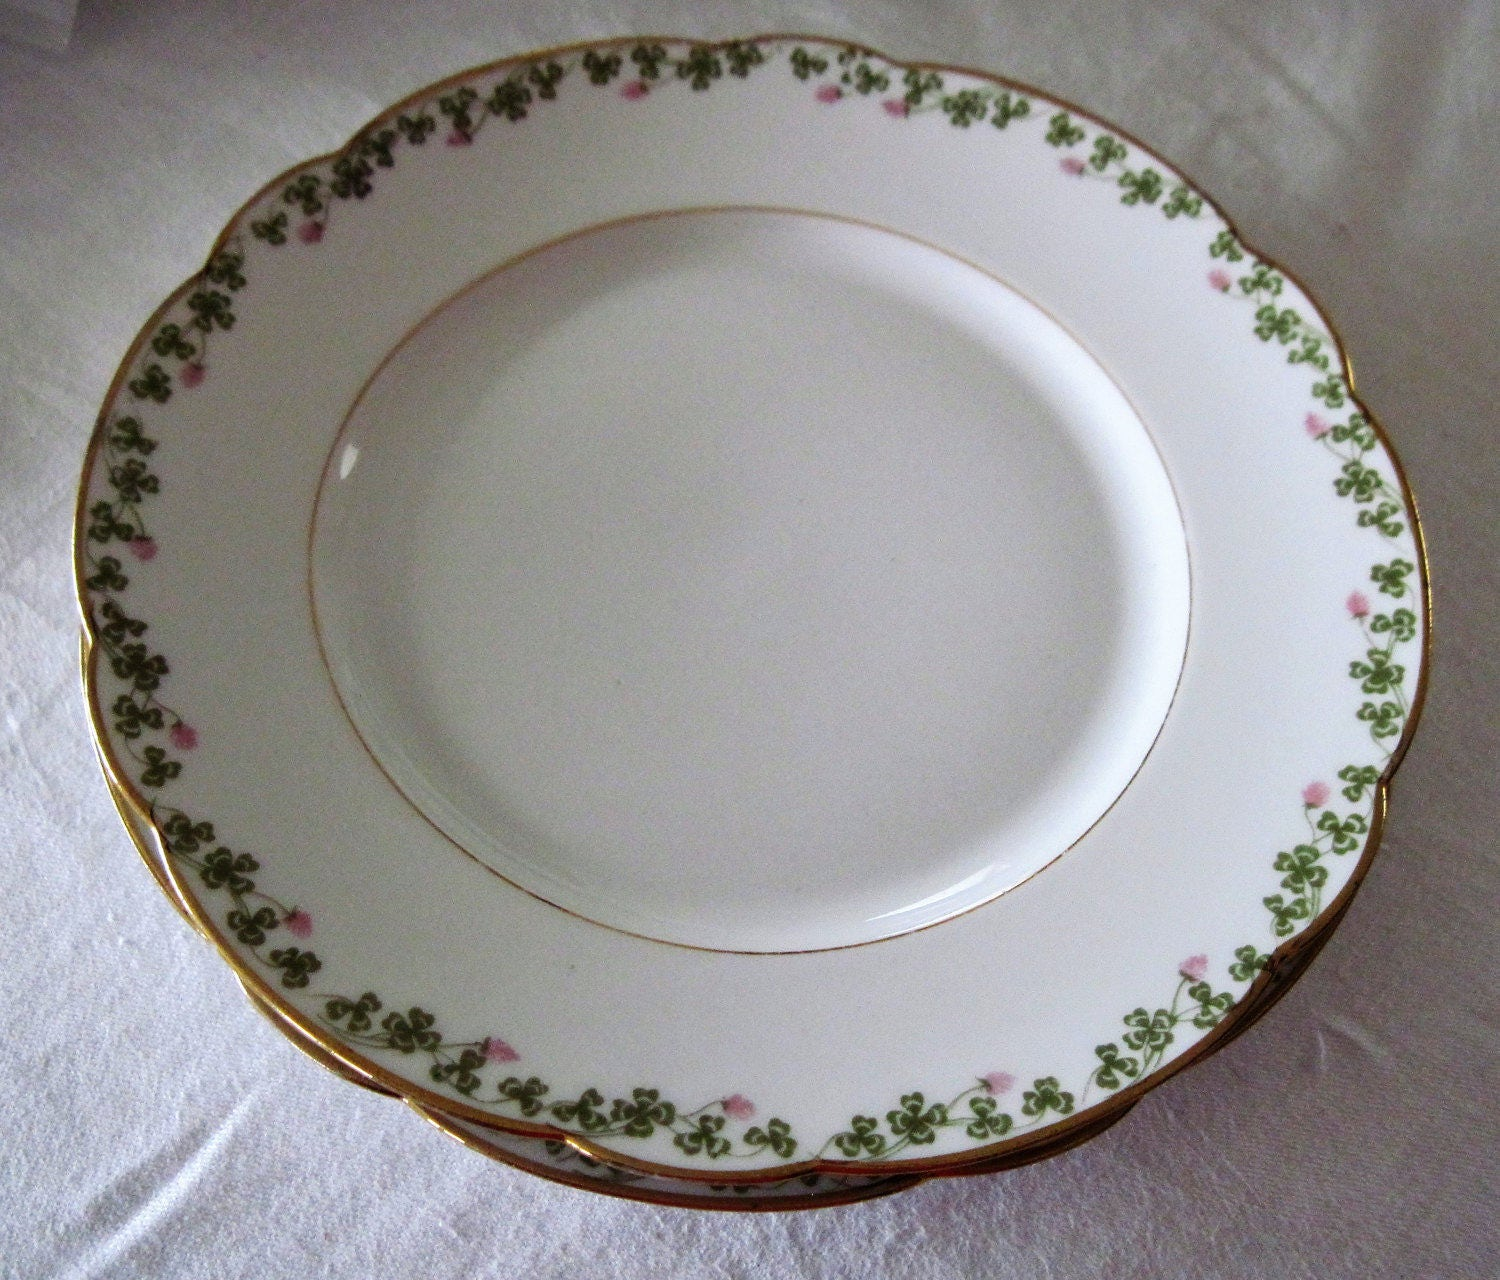 Limoges China Patterns Gold Trim Interesting Inspiration